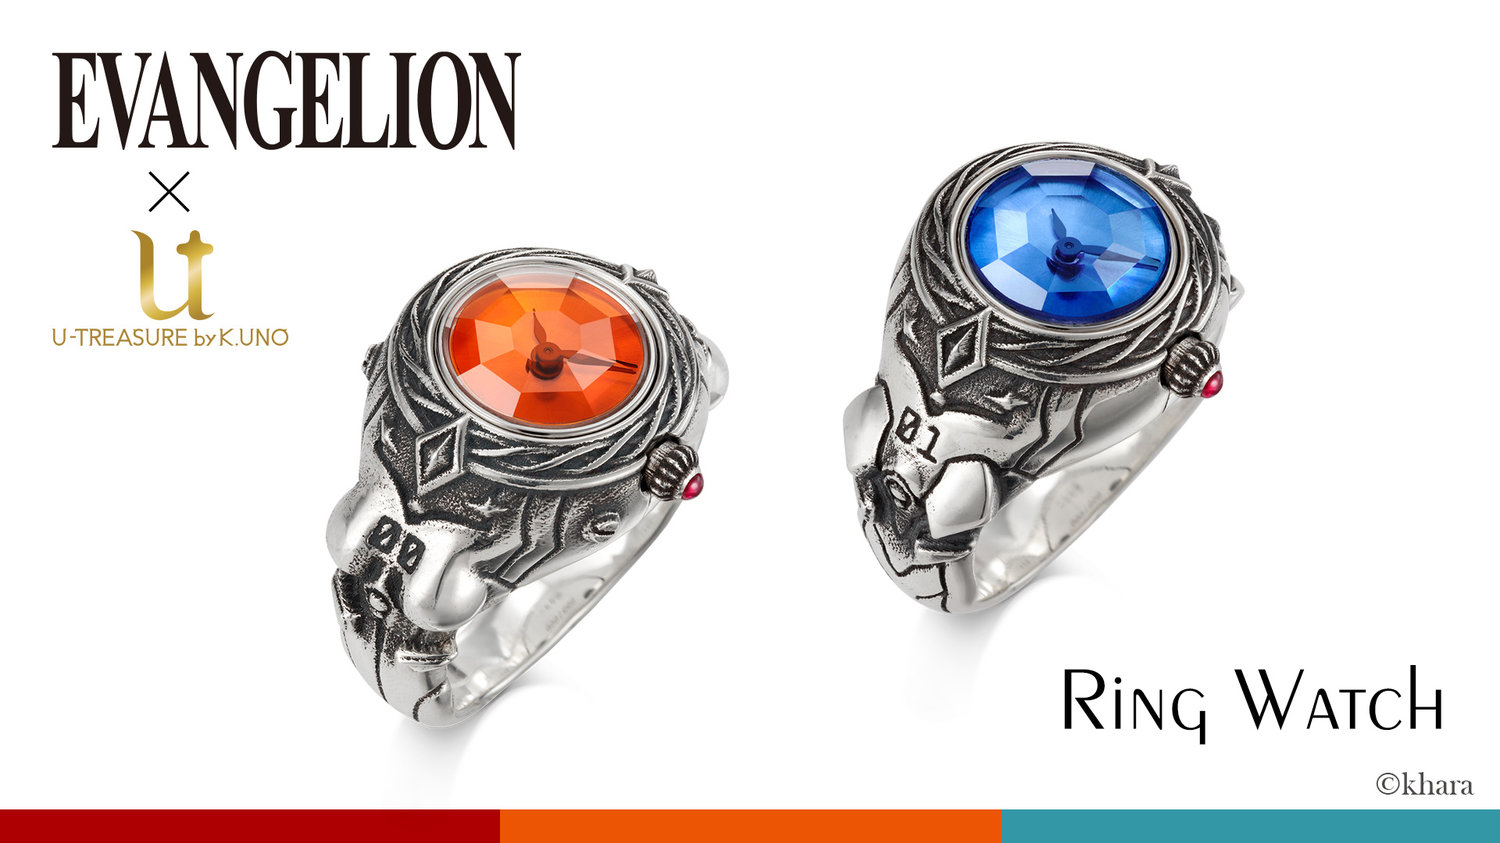 EVANGELION x Ring Watch [Limited Edition]